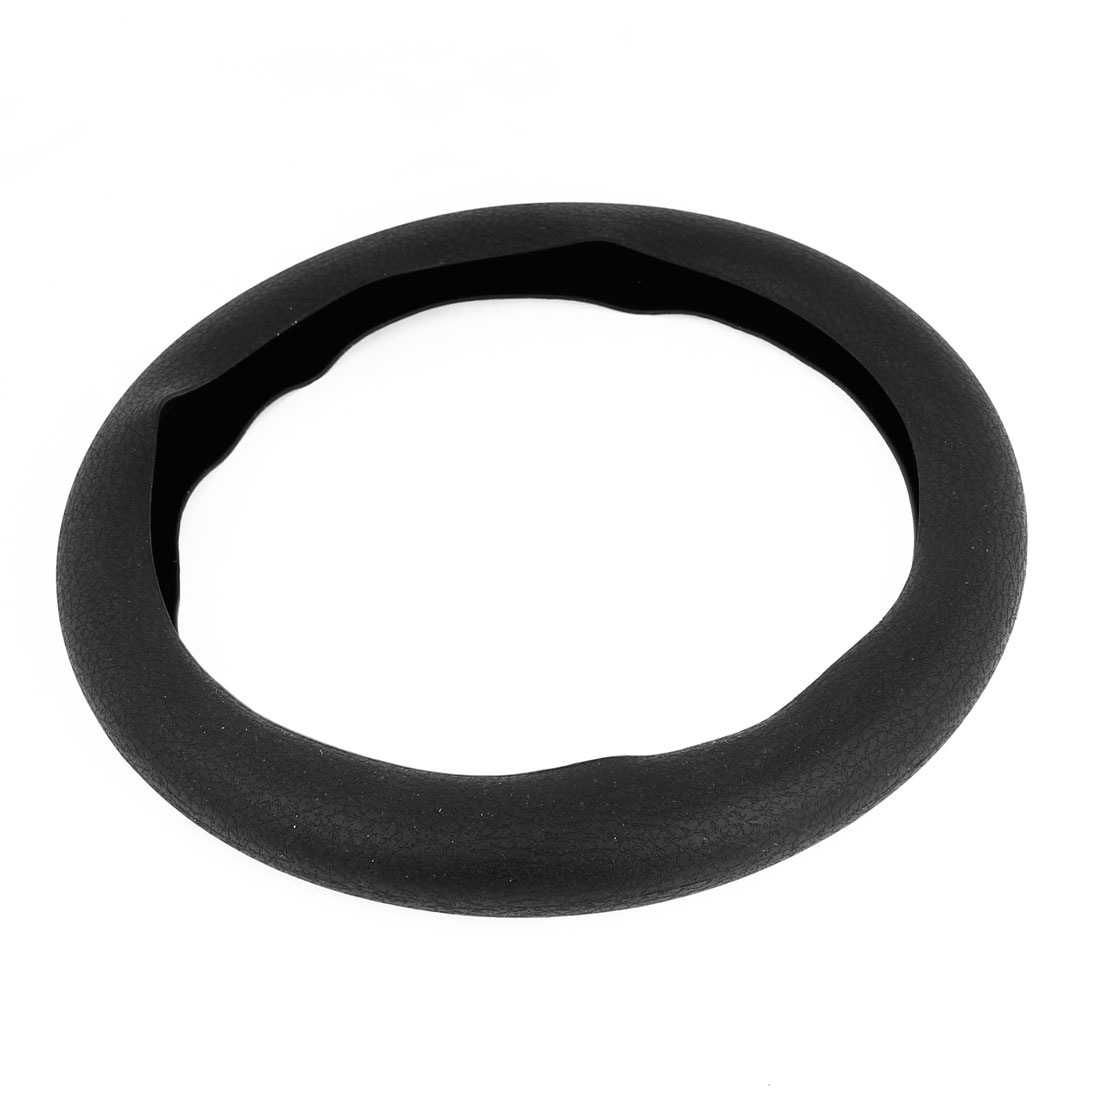 33cm Dia Antislip Black Silicone Steering Wheel Cover Protector for Car